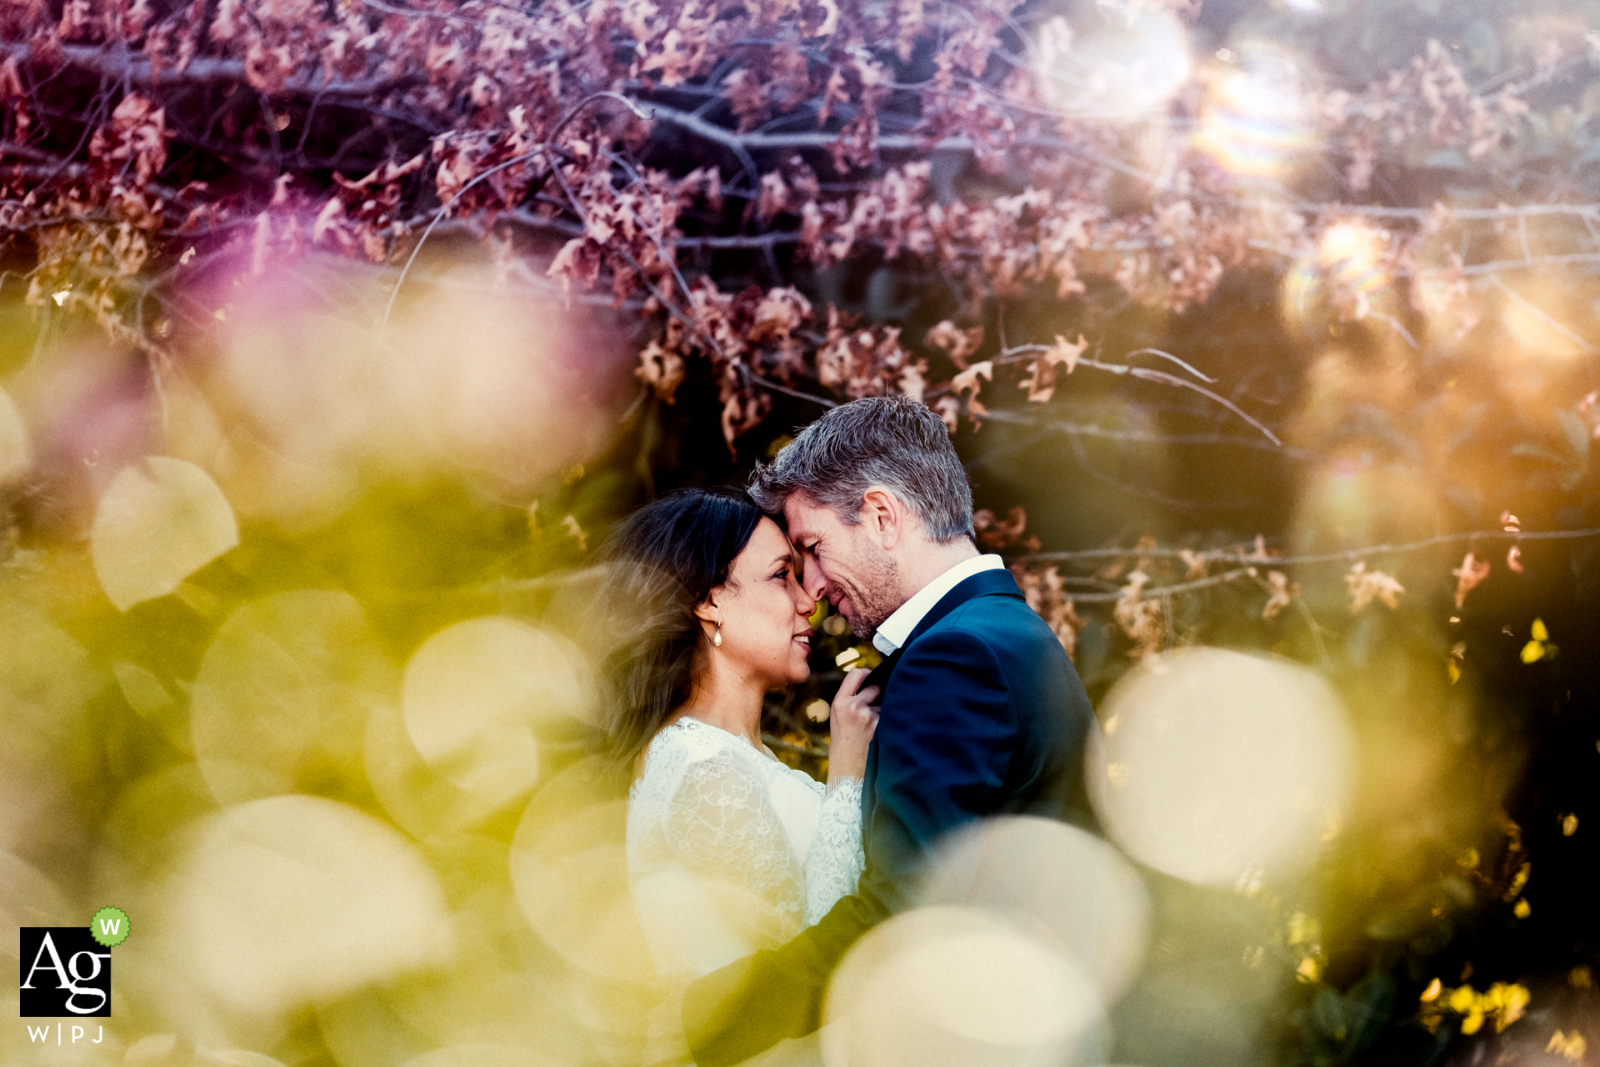 Cape Town fine art wedding portrait image during the late afternoon and the sun shined brilliantly on the leaves, This made for a creative couple portrait when shooting into the sun